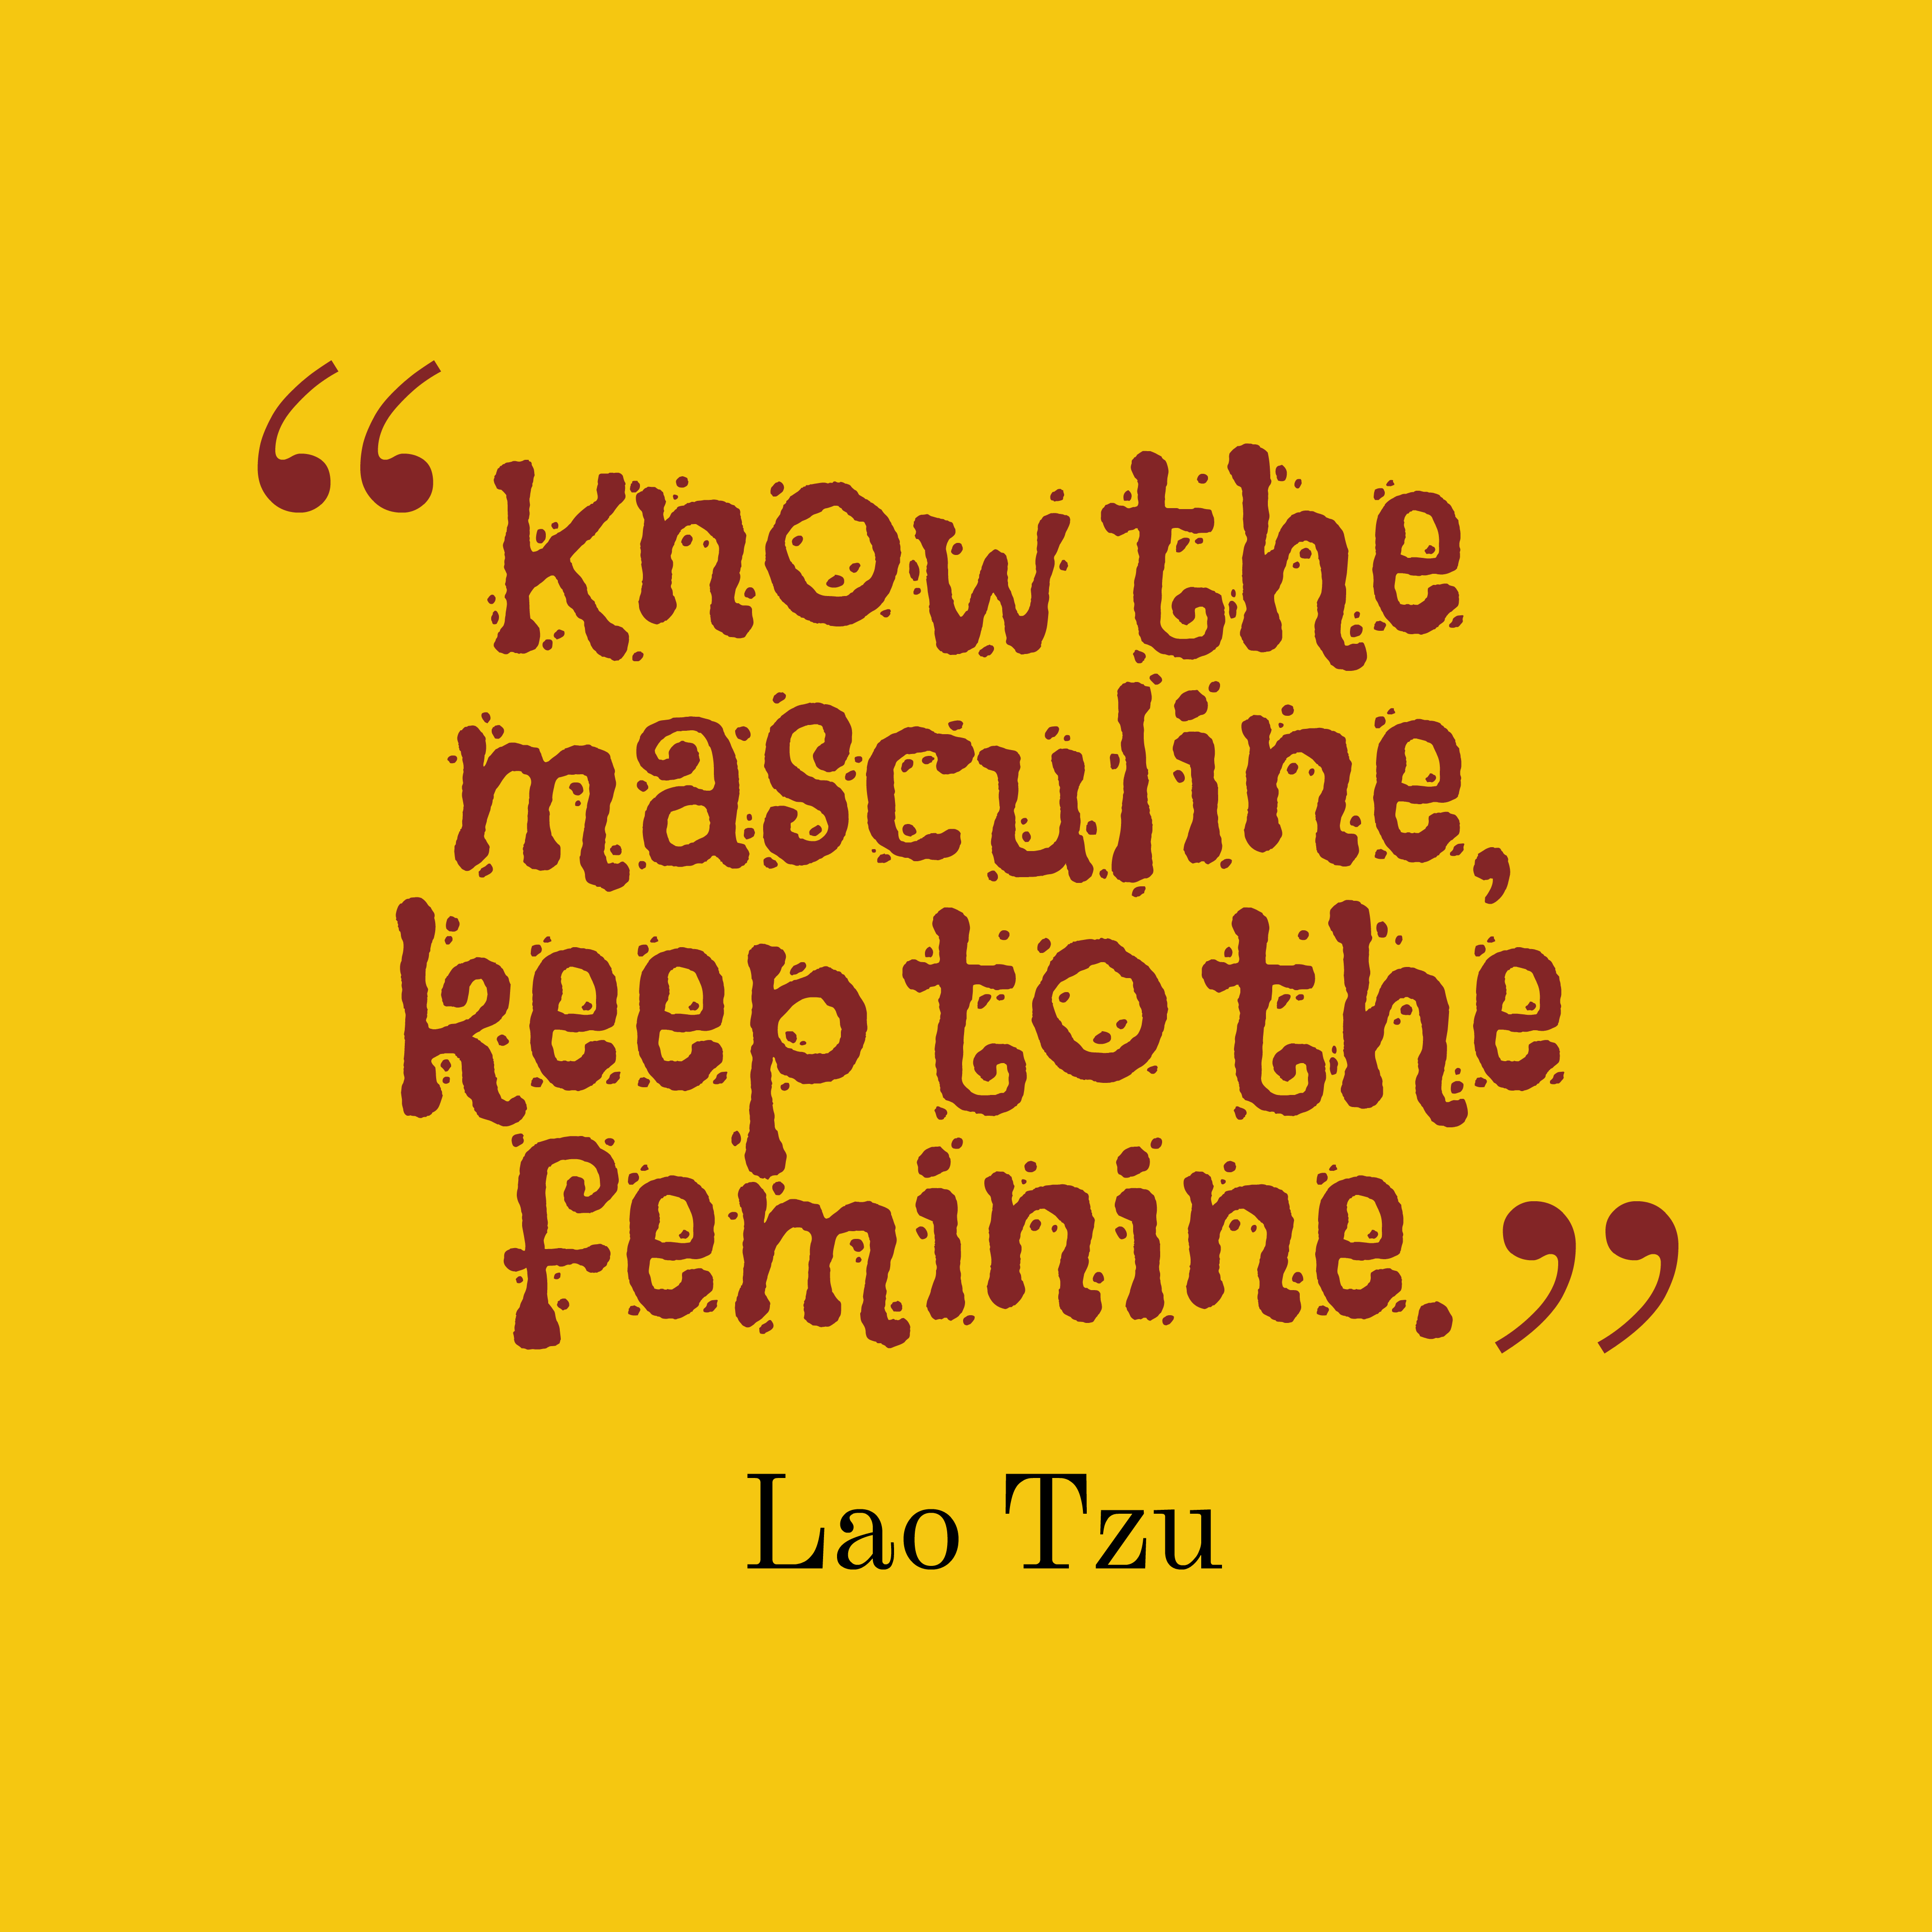 Quotes image of Know the masculine, keep to the feminine.